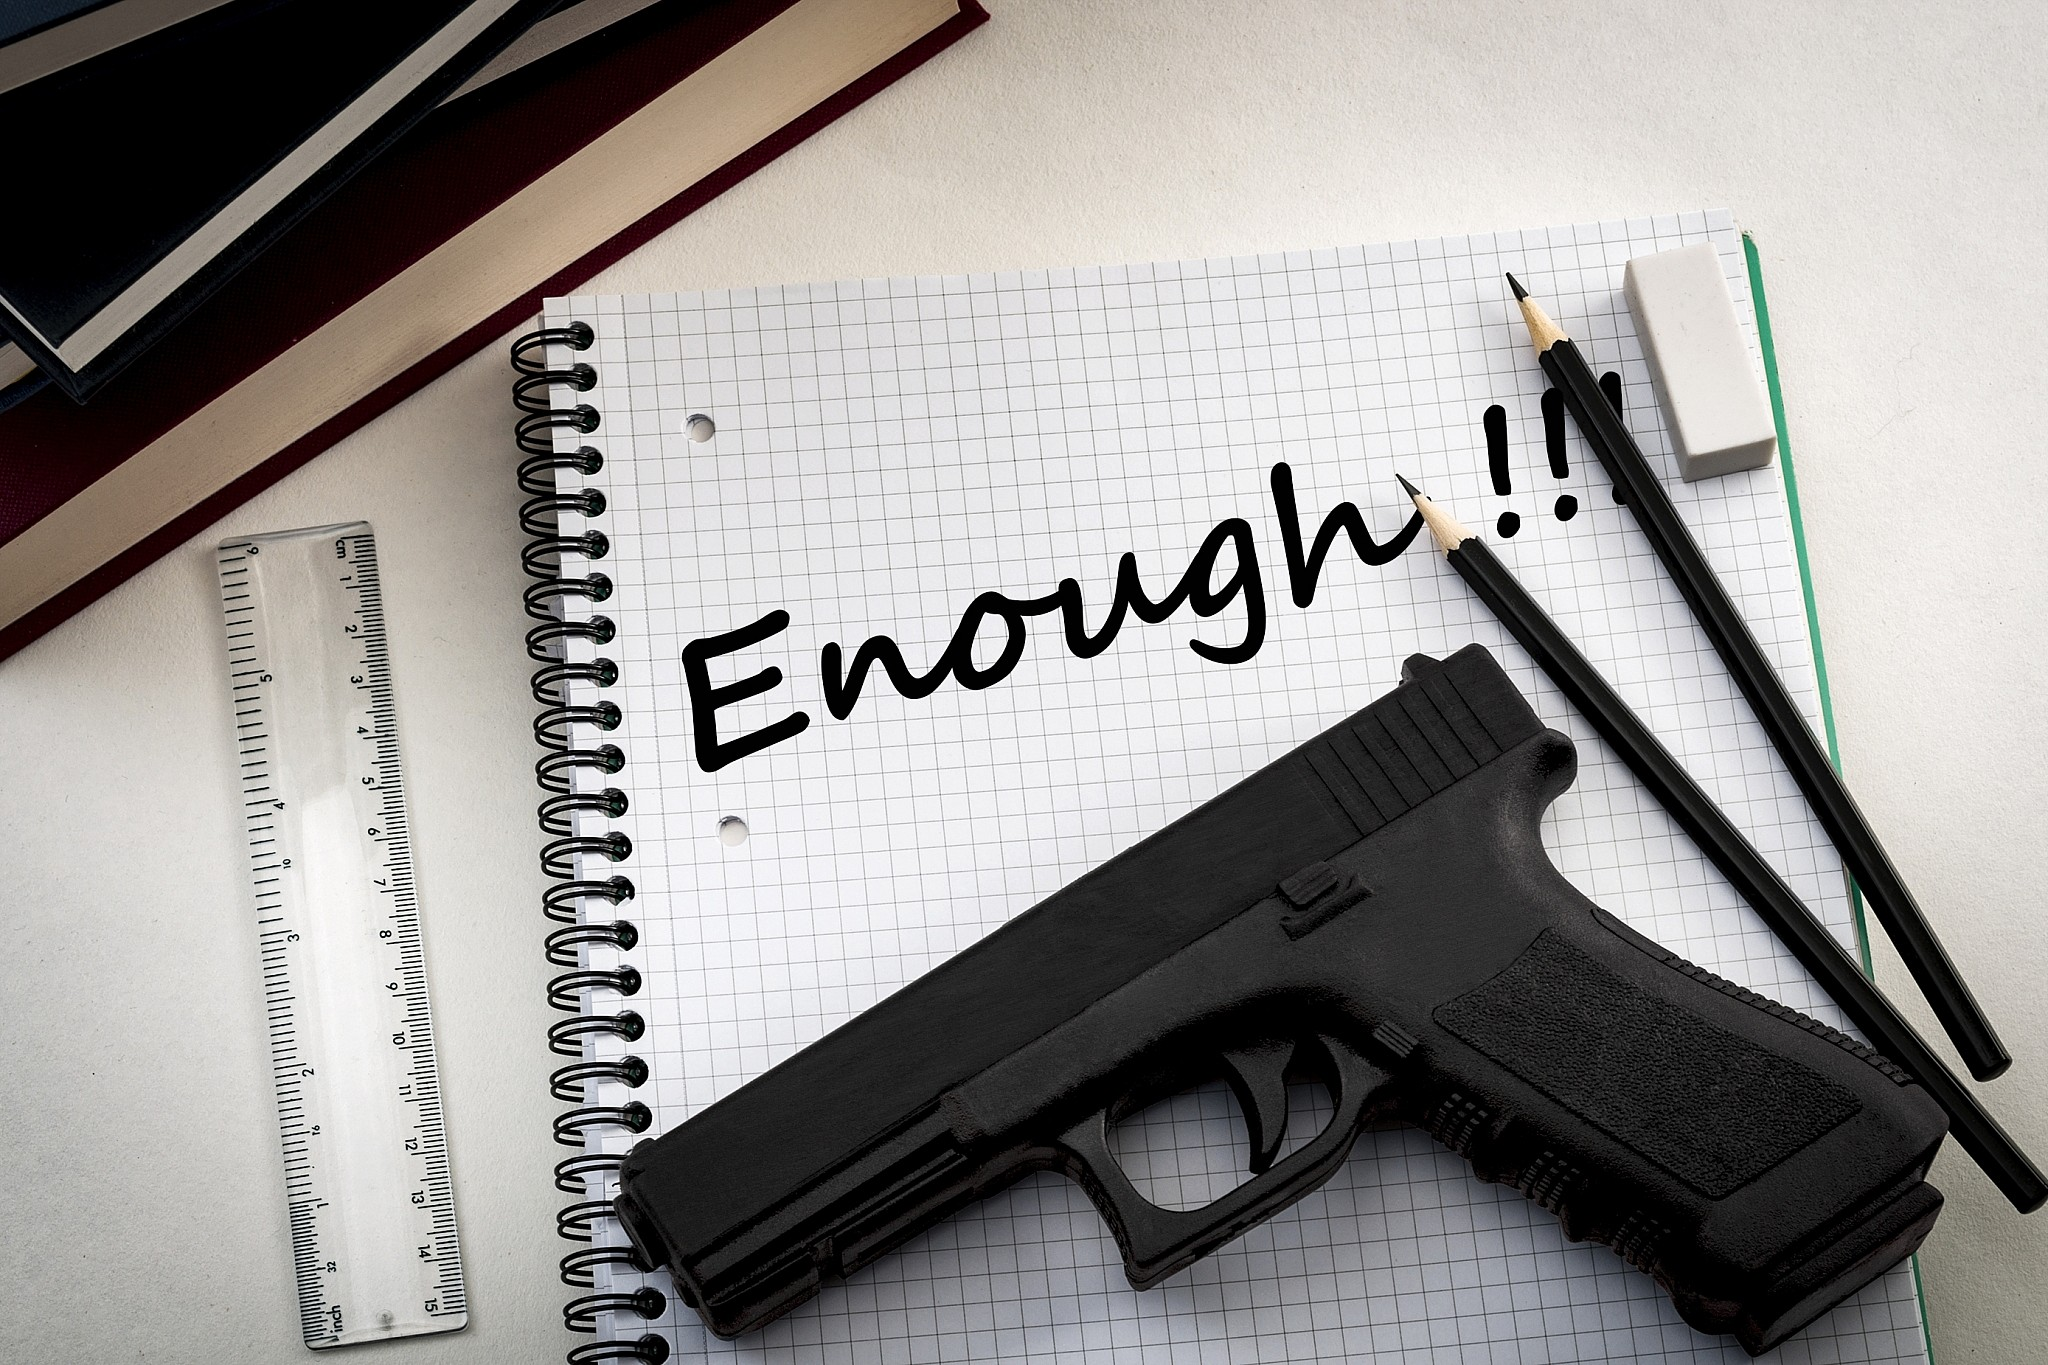 guns on college campuses essay